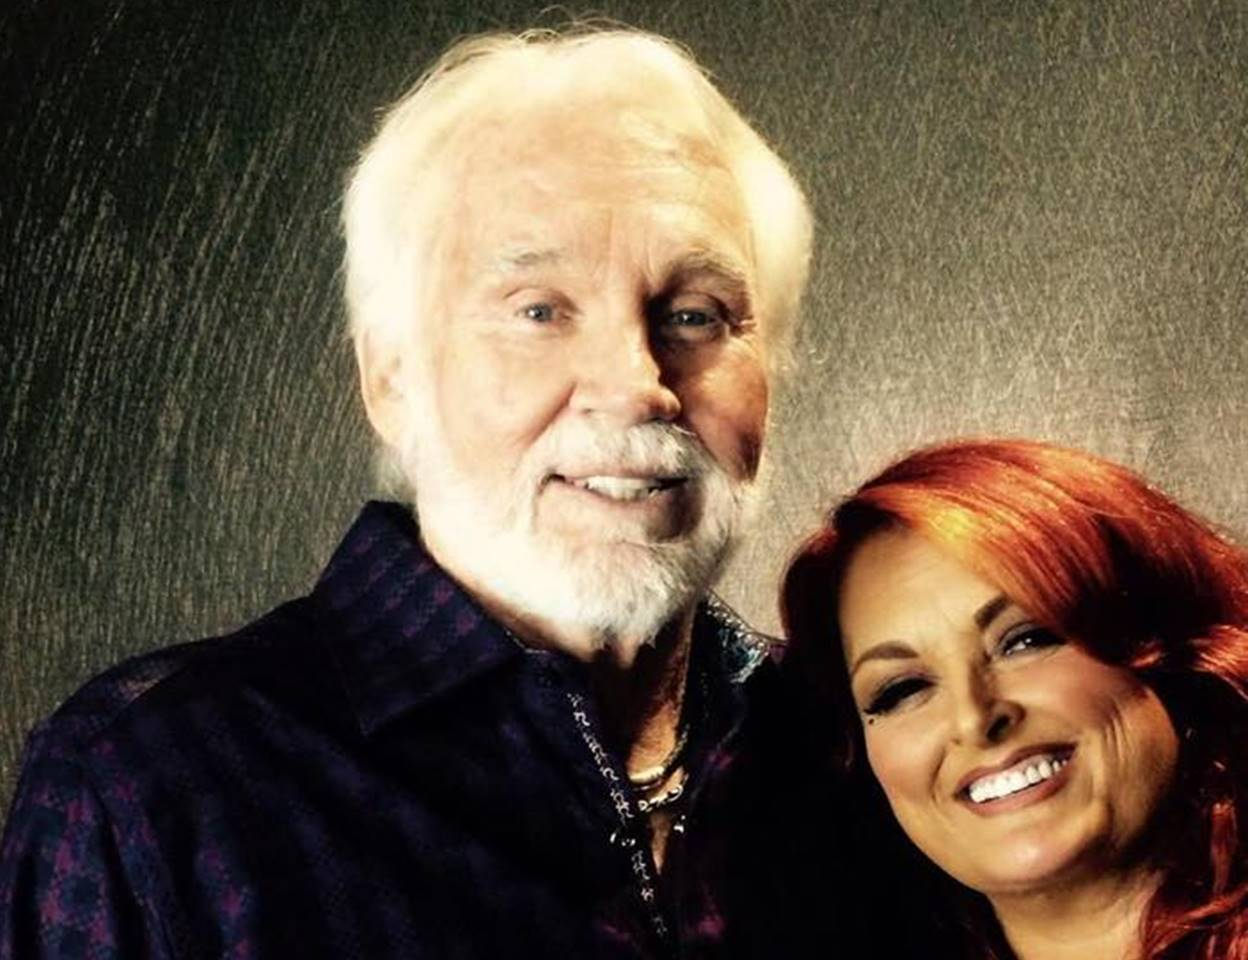 wynonna judd and kenny rogers